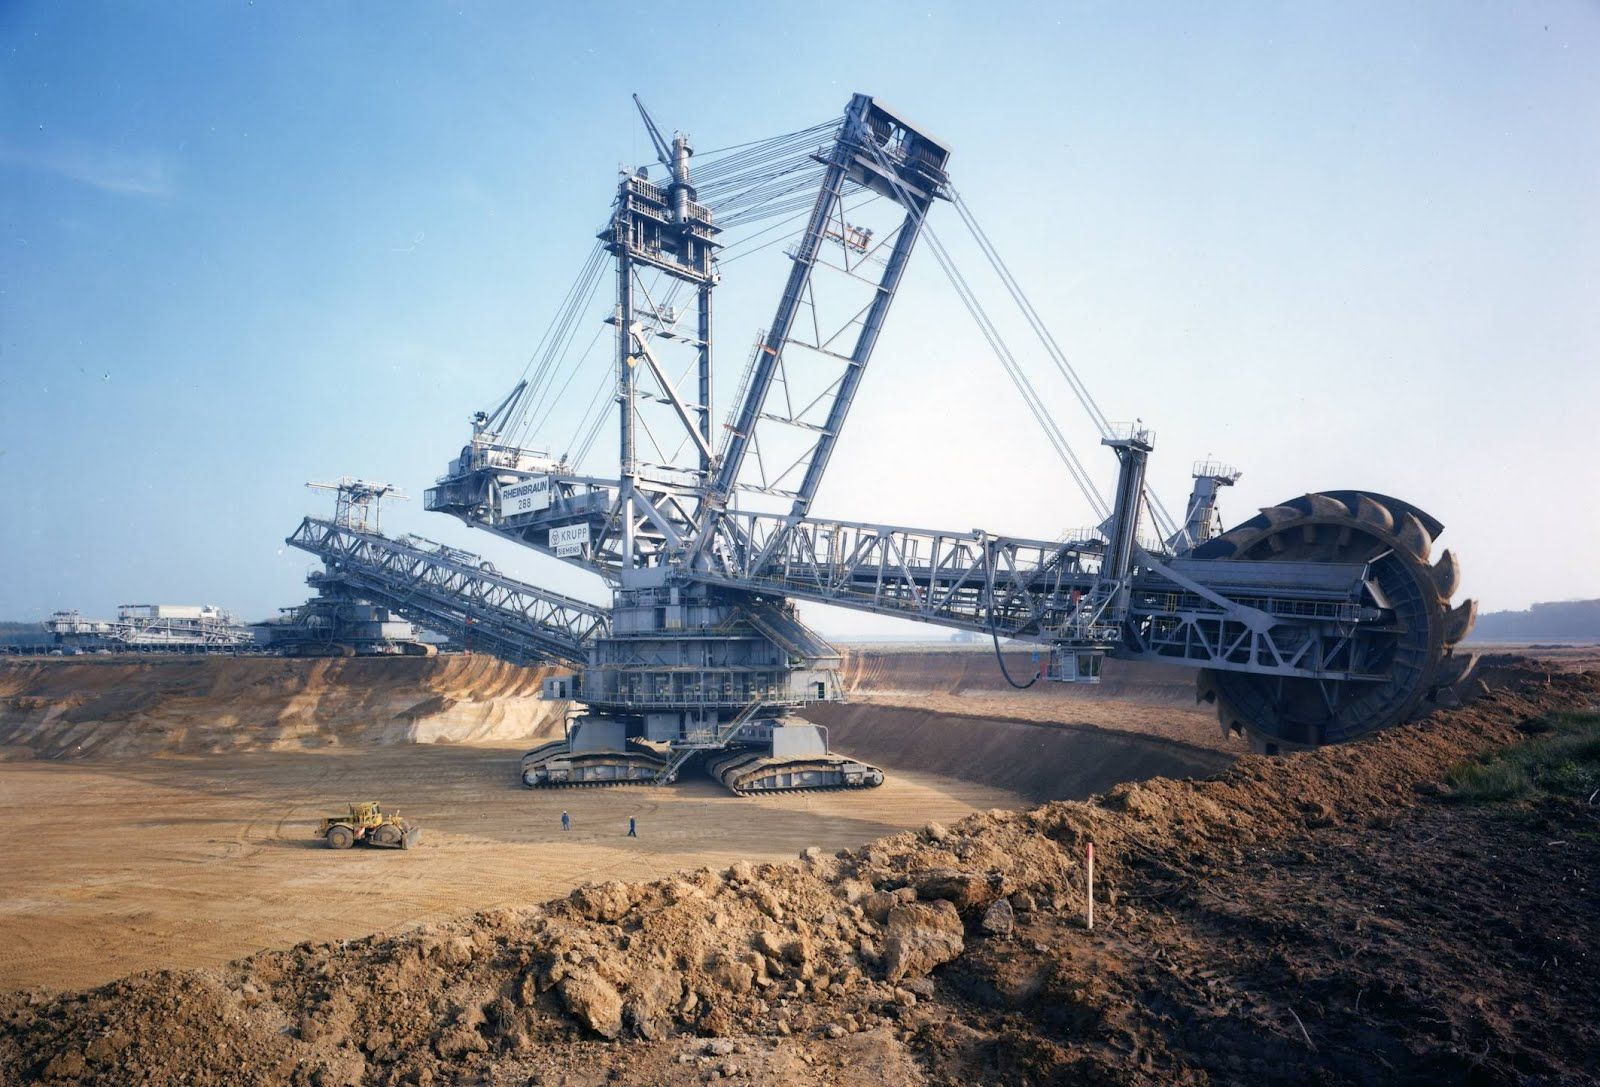 Im diggin the bagger biggest vehicle in the